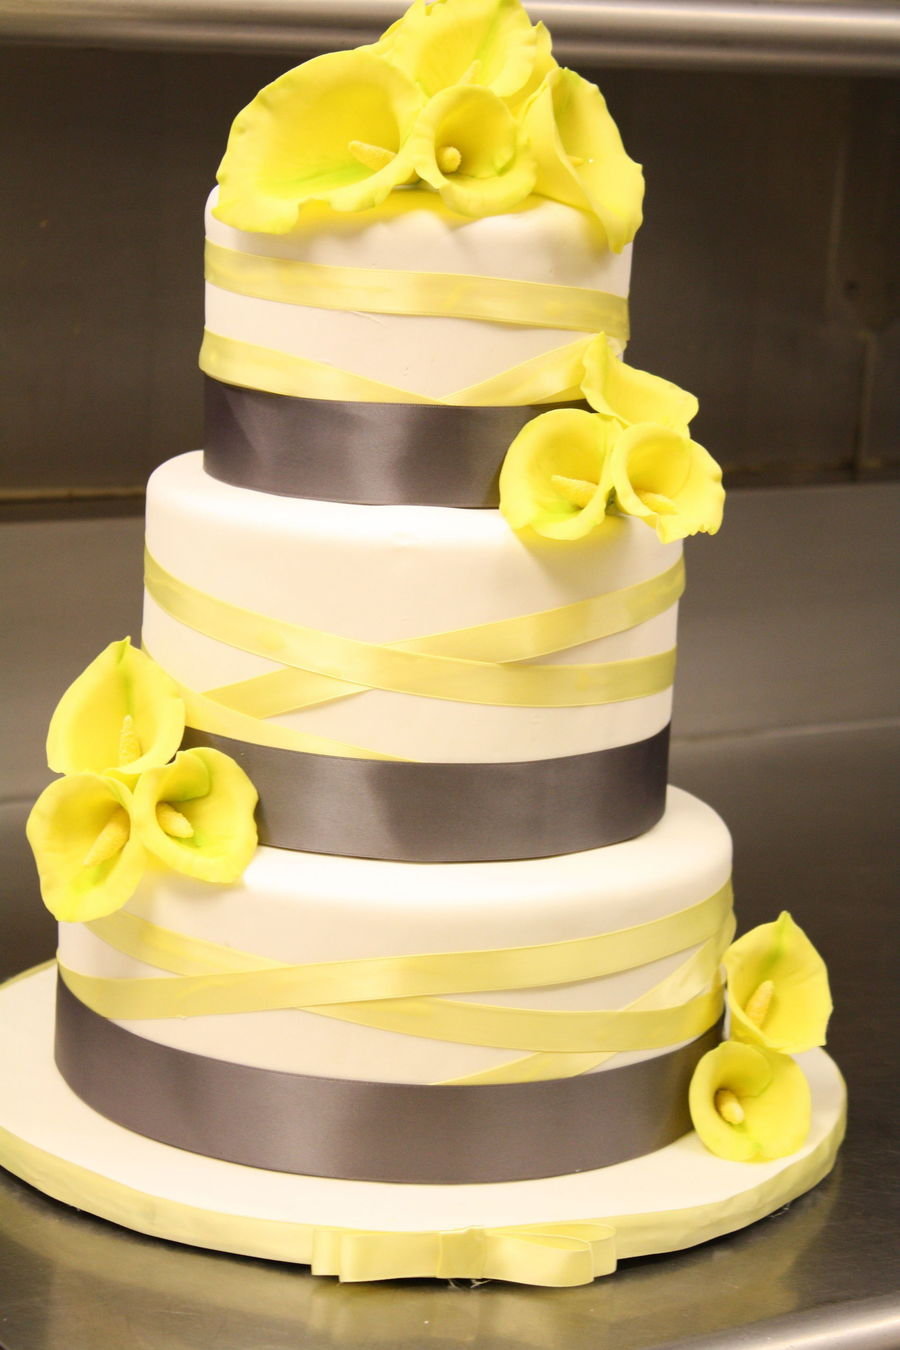 Calla Lily Wedding Cake In Grey And Yellow - CakeCentral.com